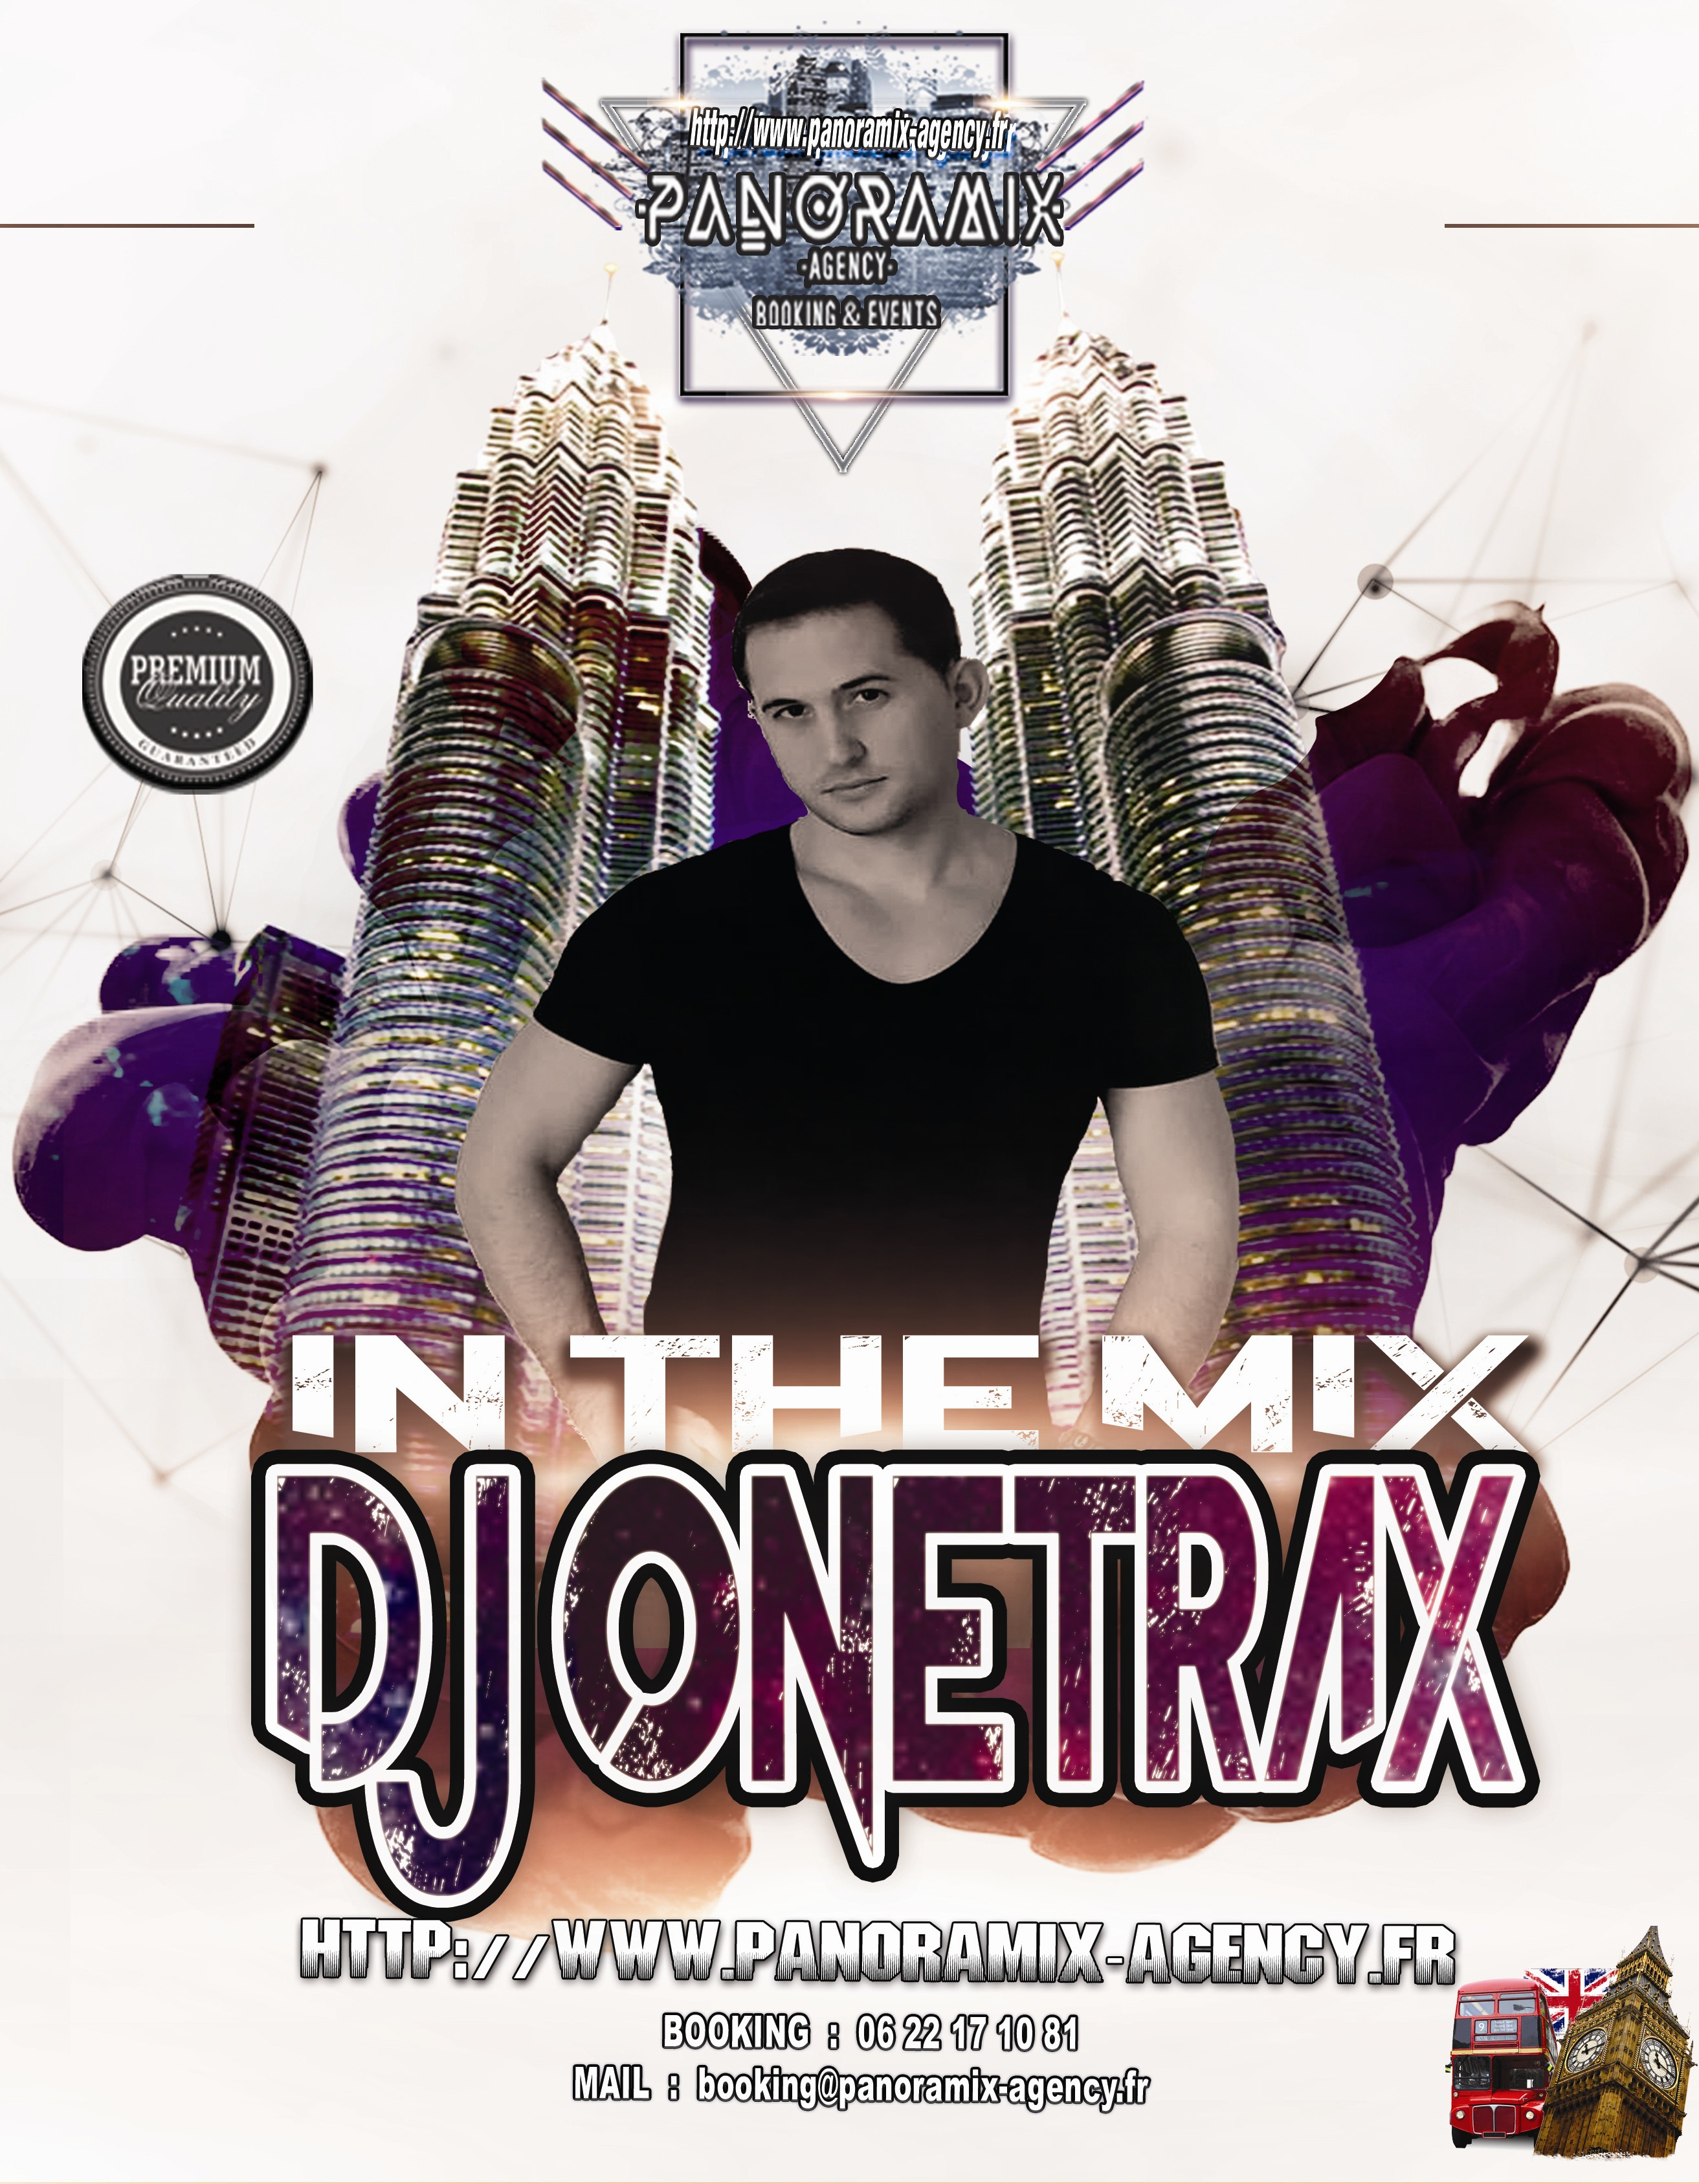 http://panoramix-radio-station.com/wp-content/uploads/2017/07/ONETRAX-IN-THE-MIX-.jpg